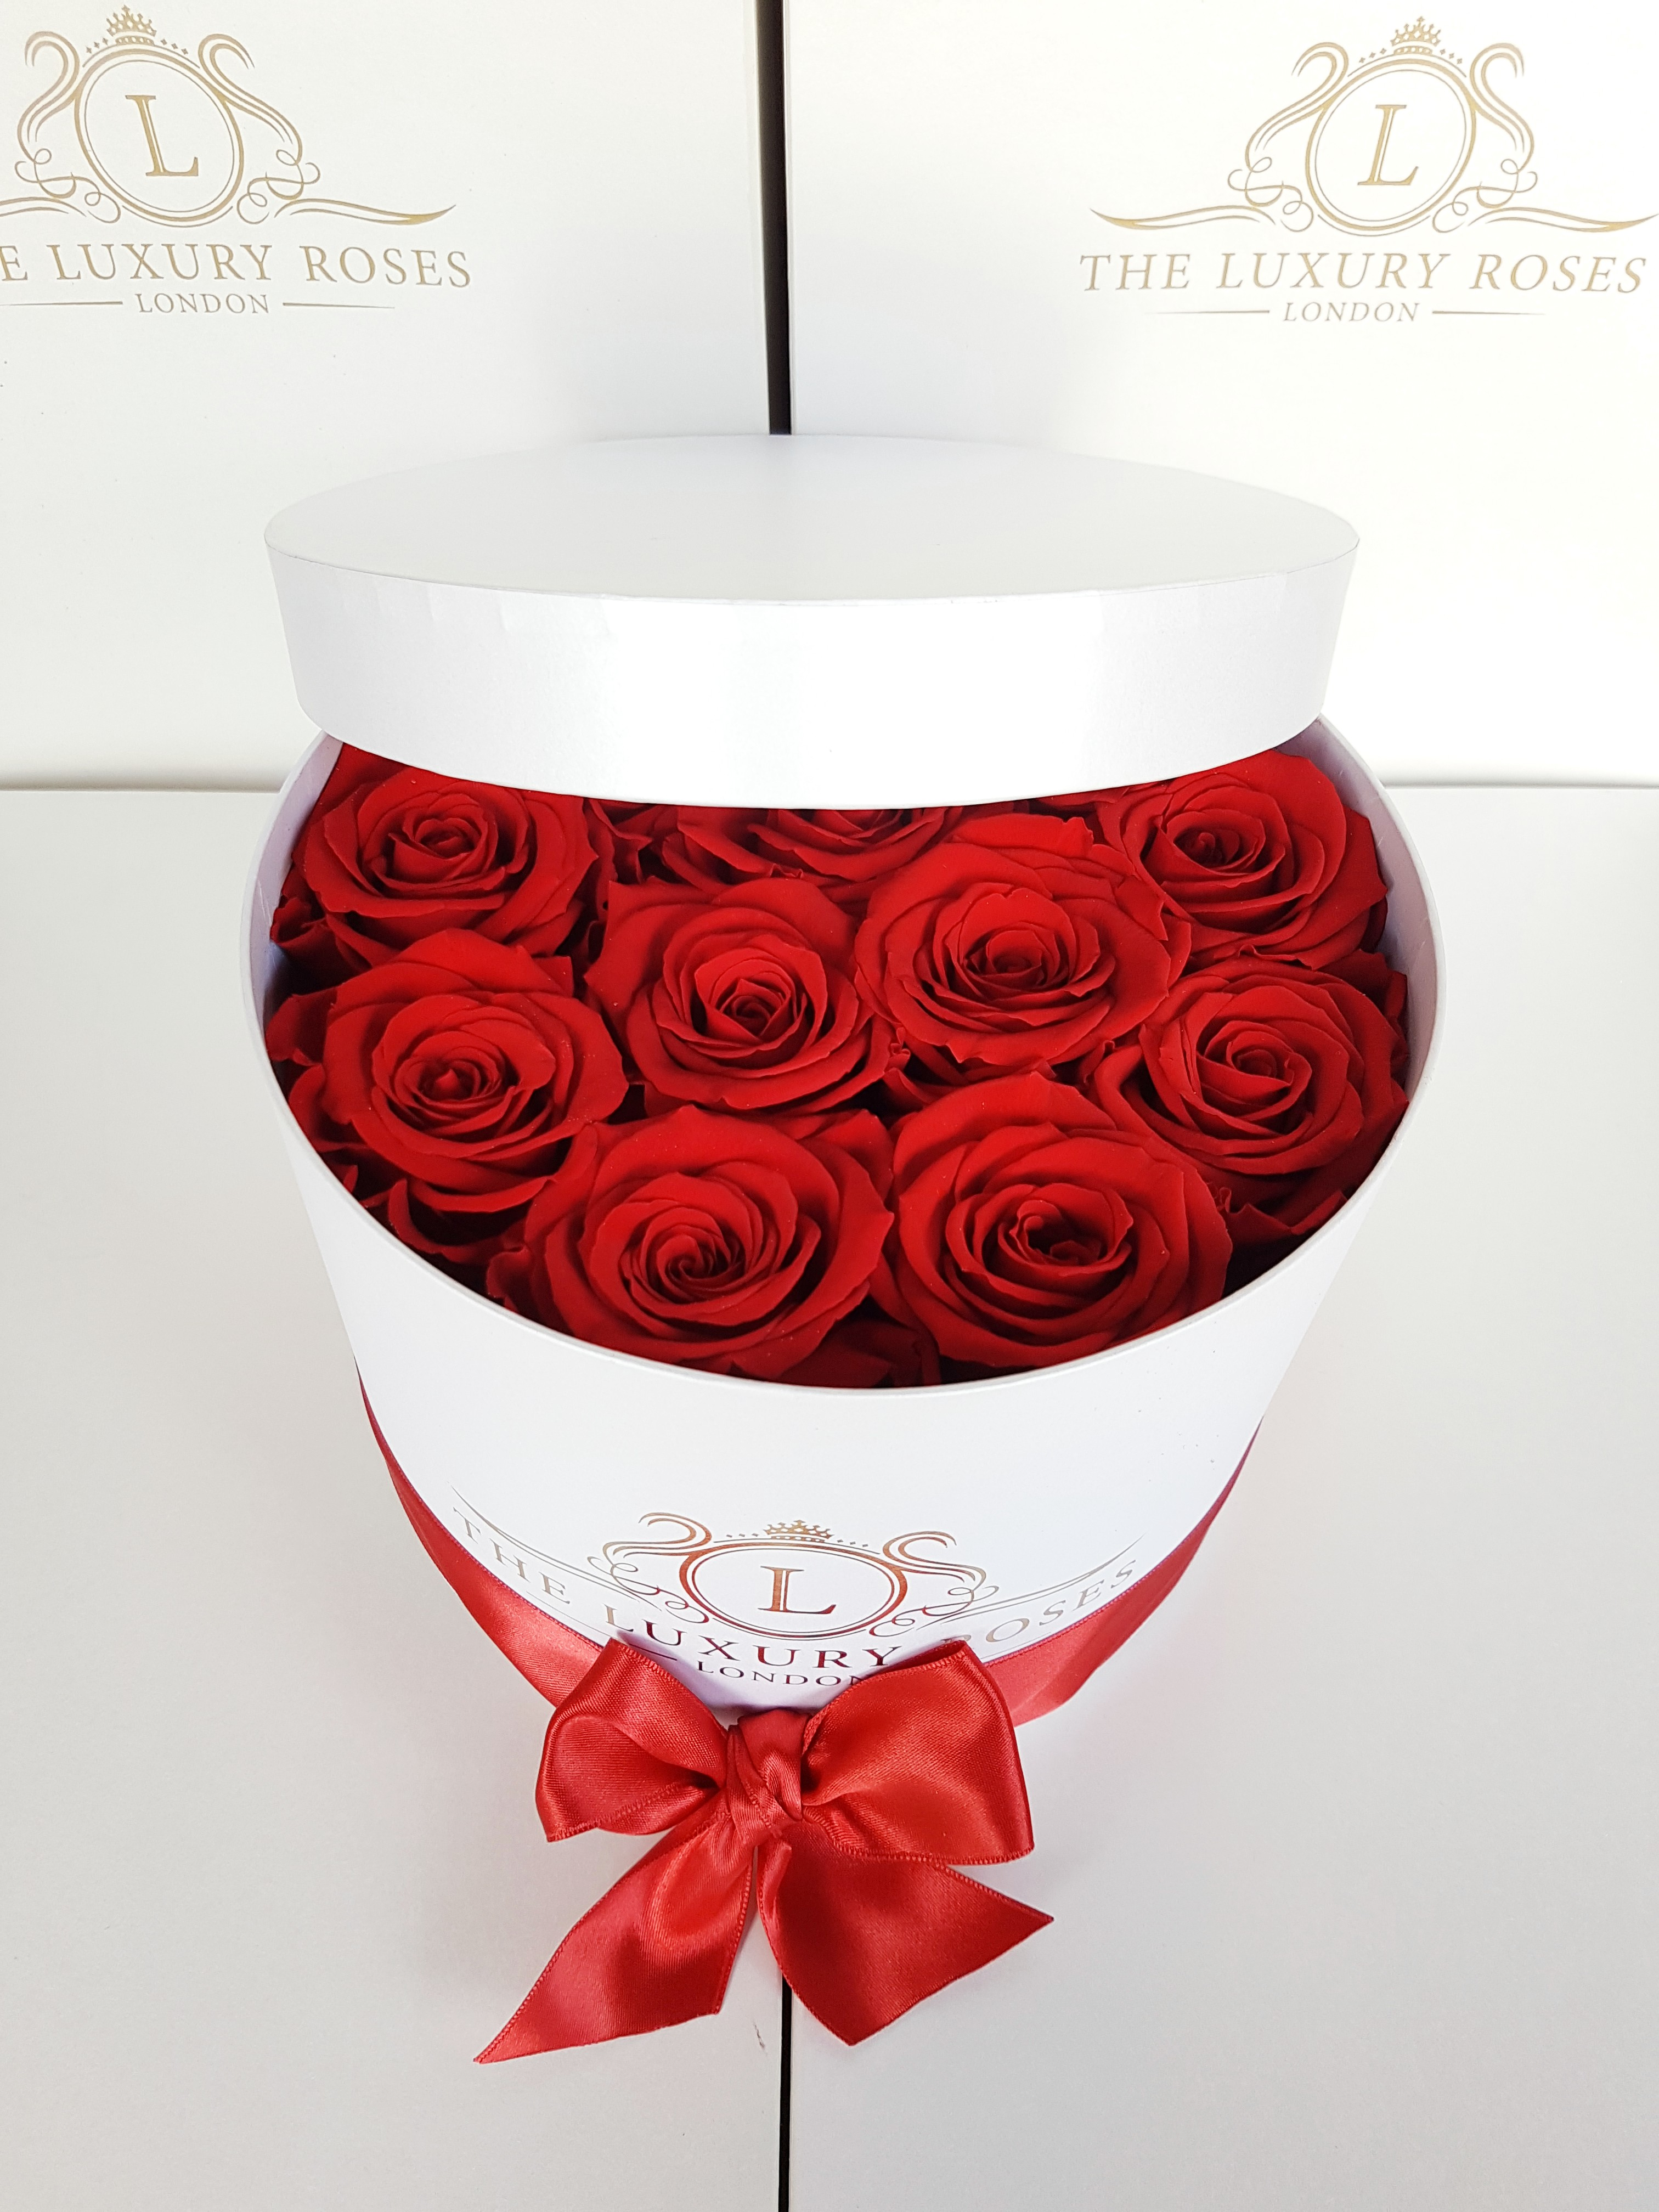 Medium White Box Of Infinity Roses That Last A Year